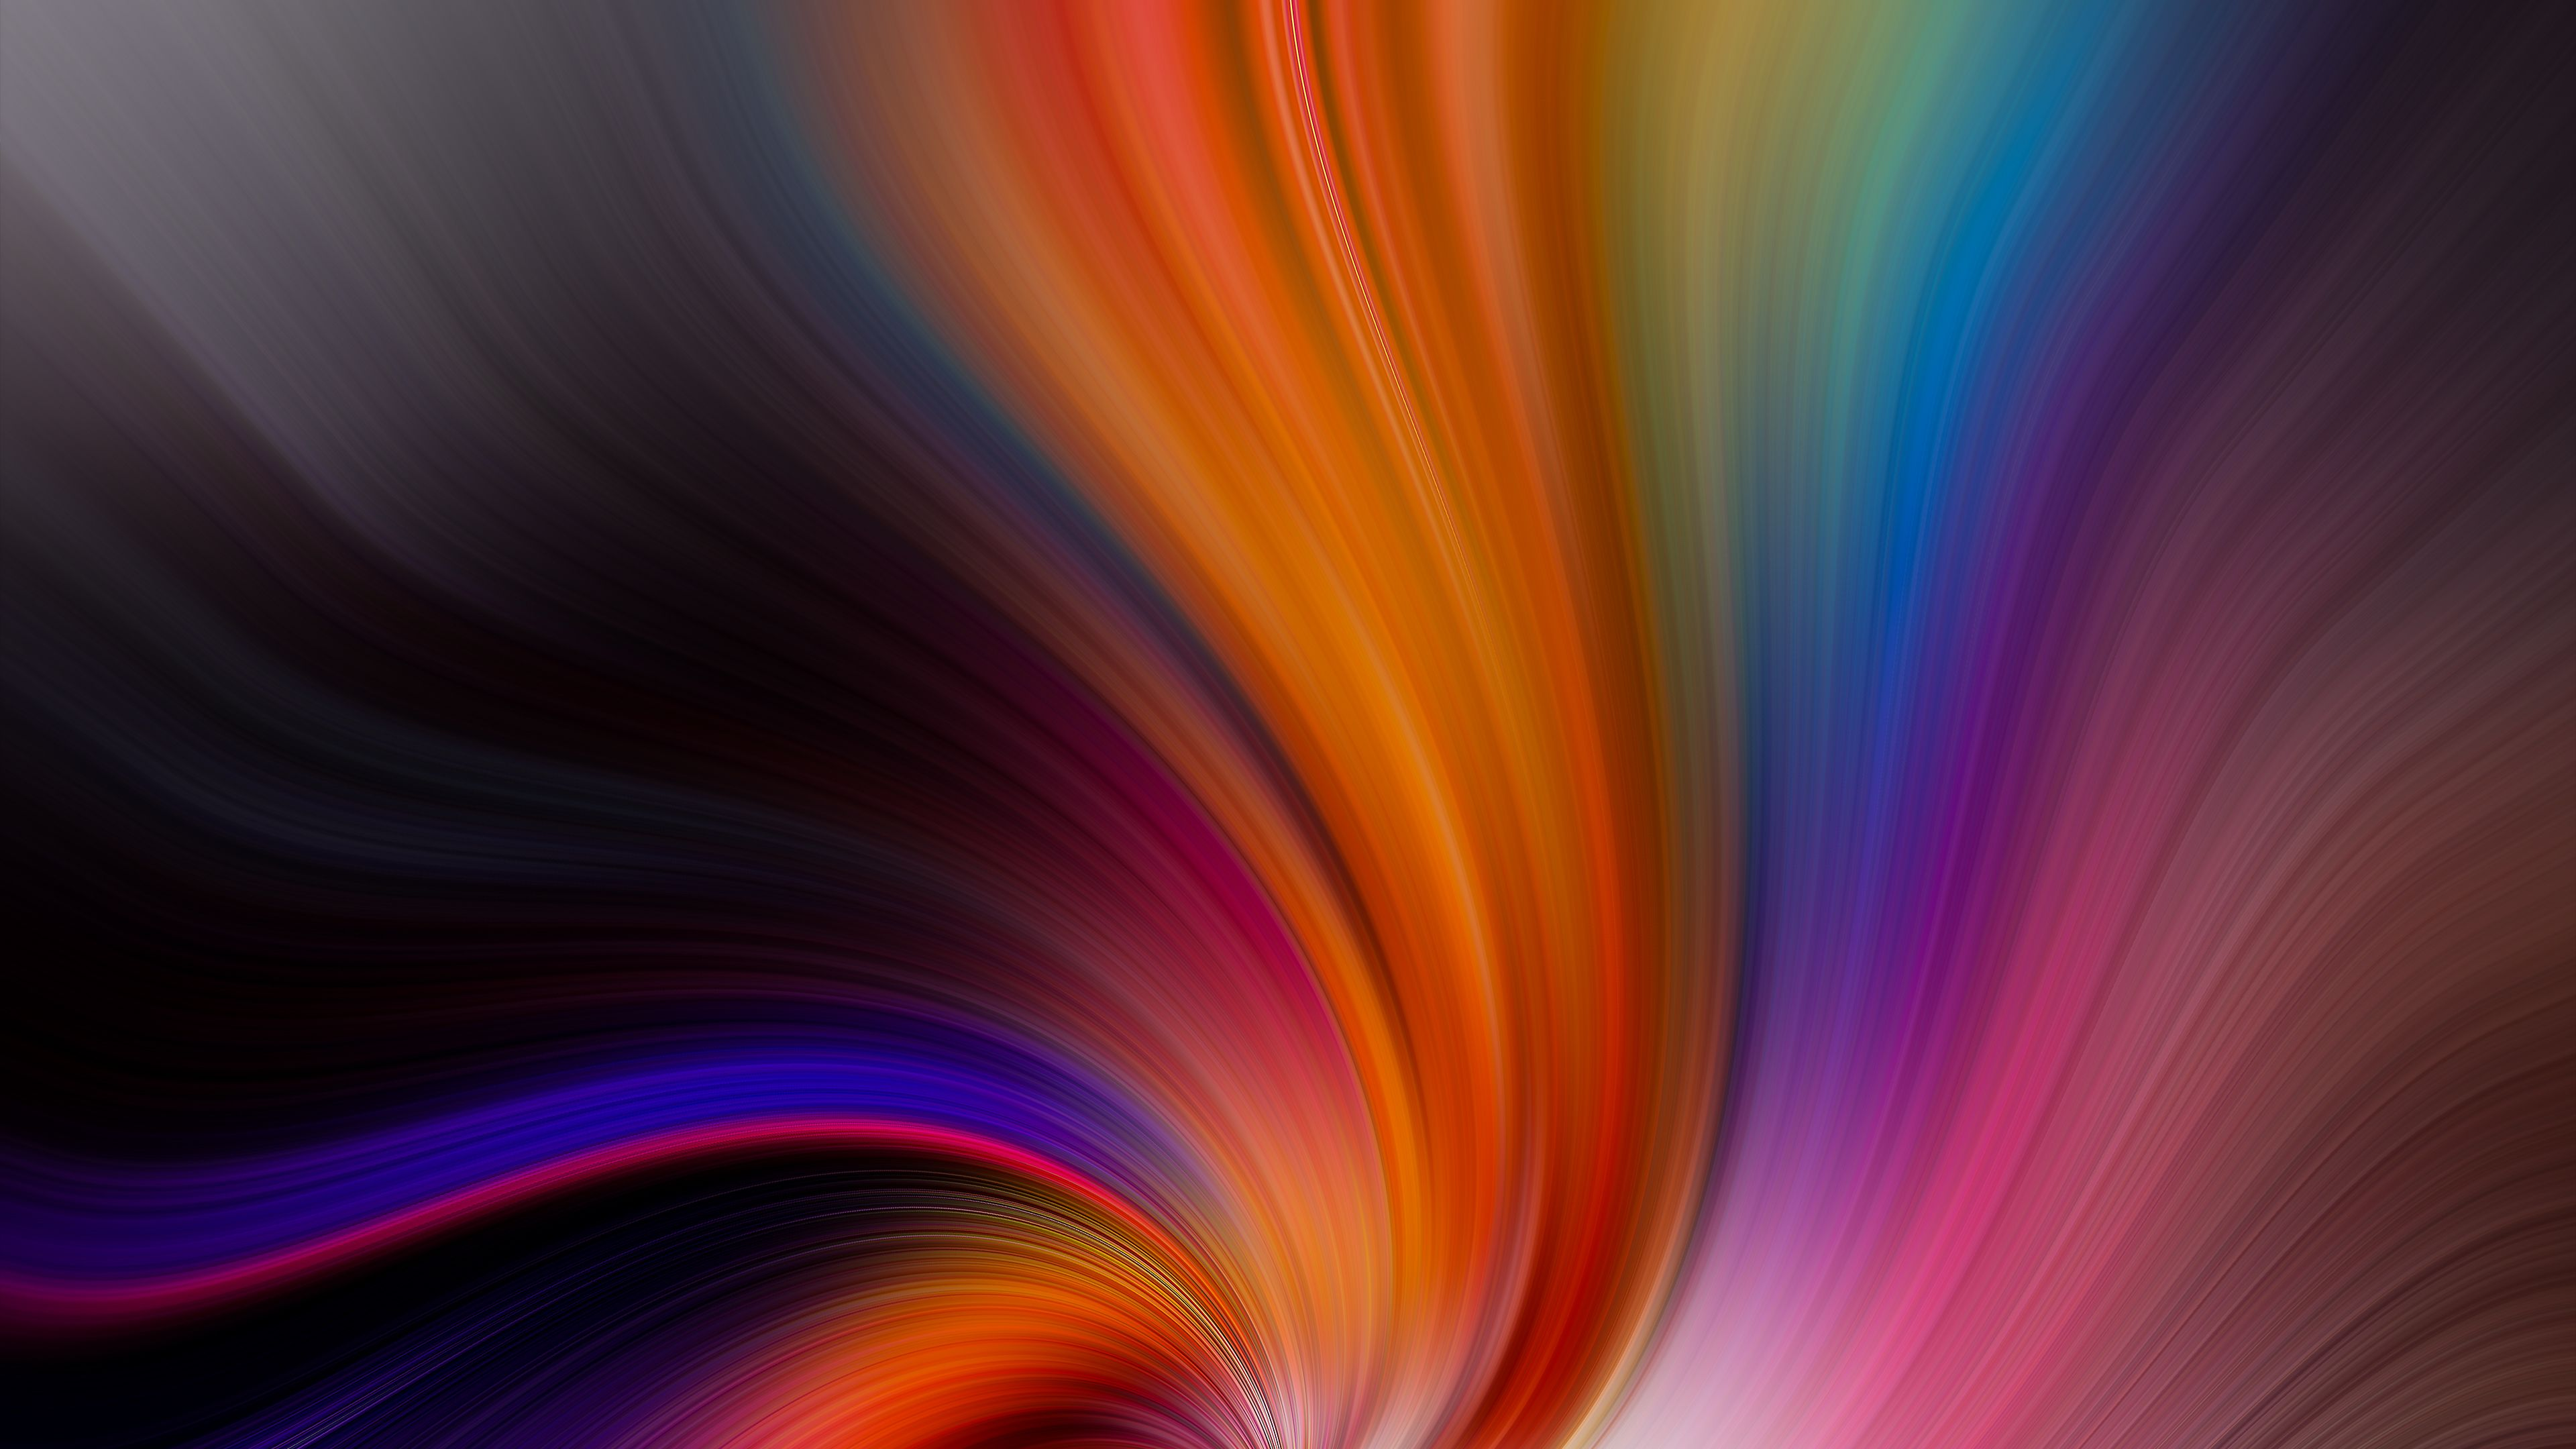 Colorful Abstract Swirl Abstract Abstract Wallpaper Swirl